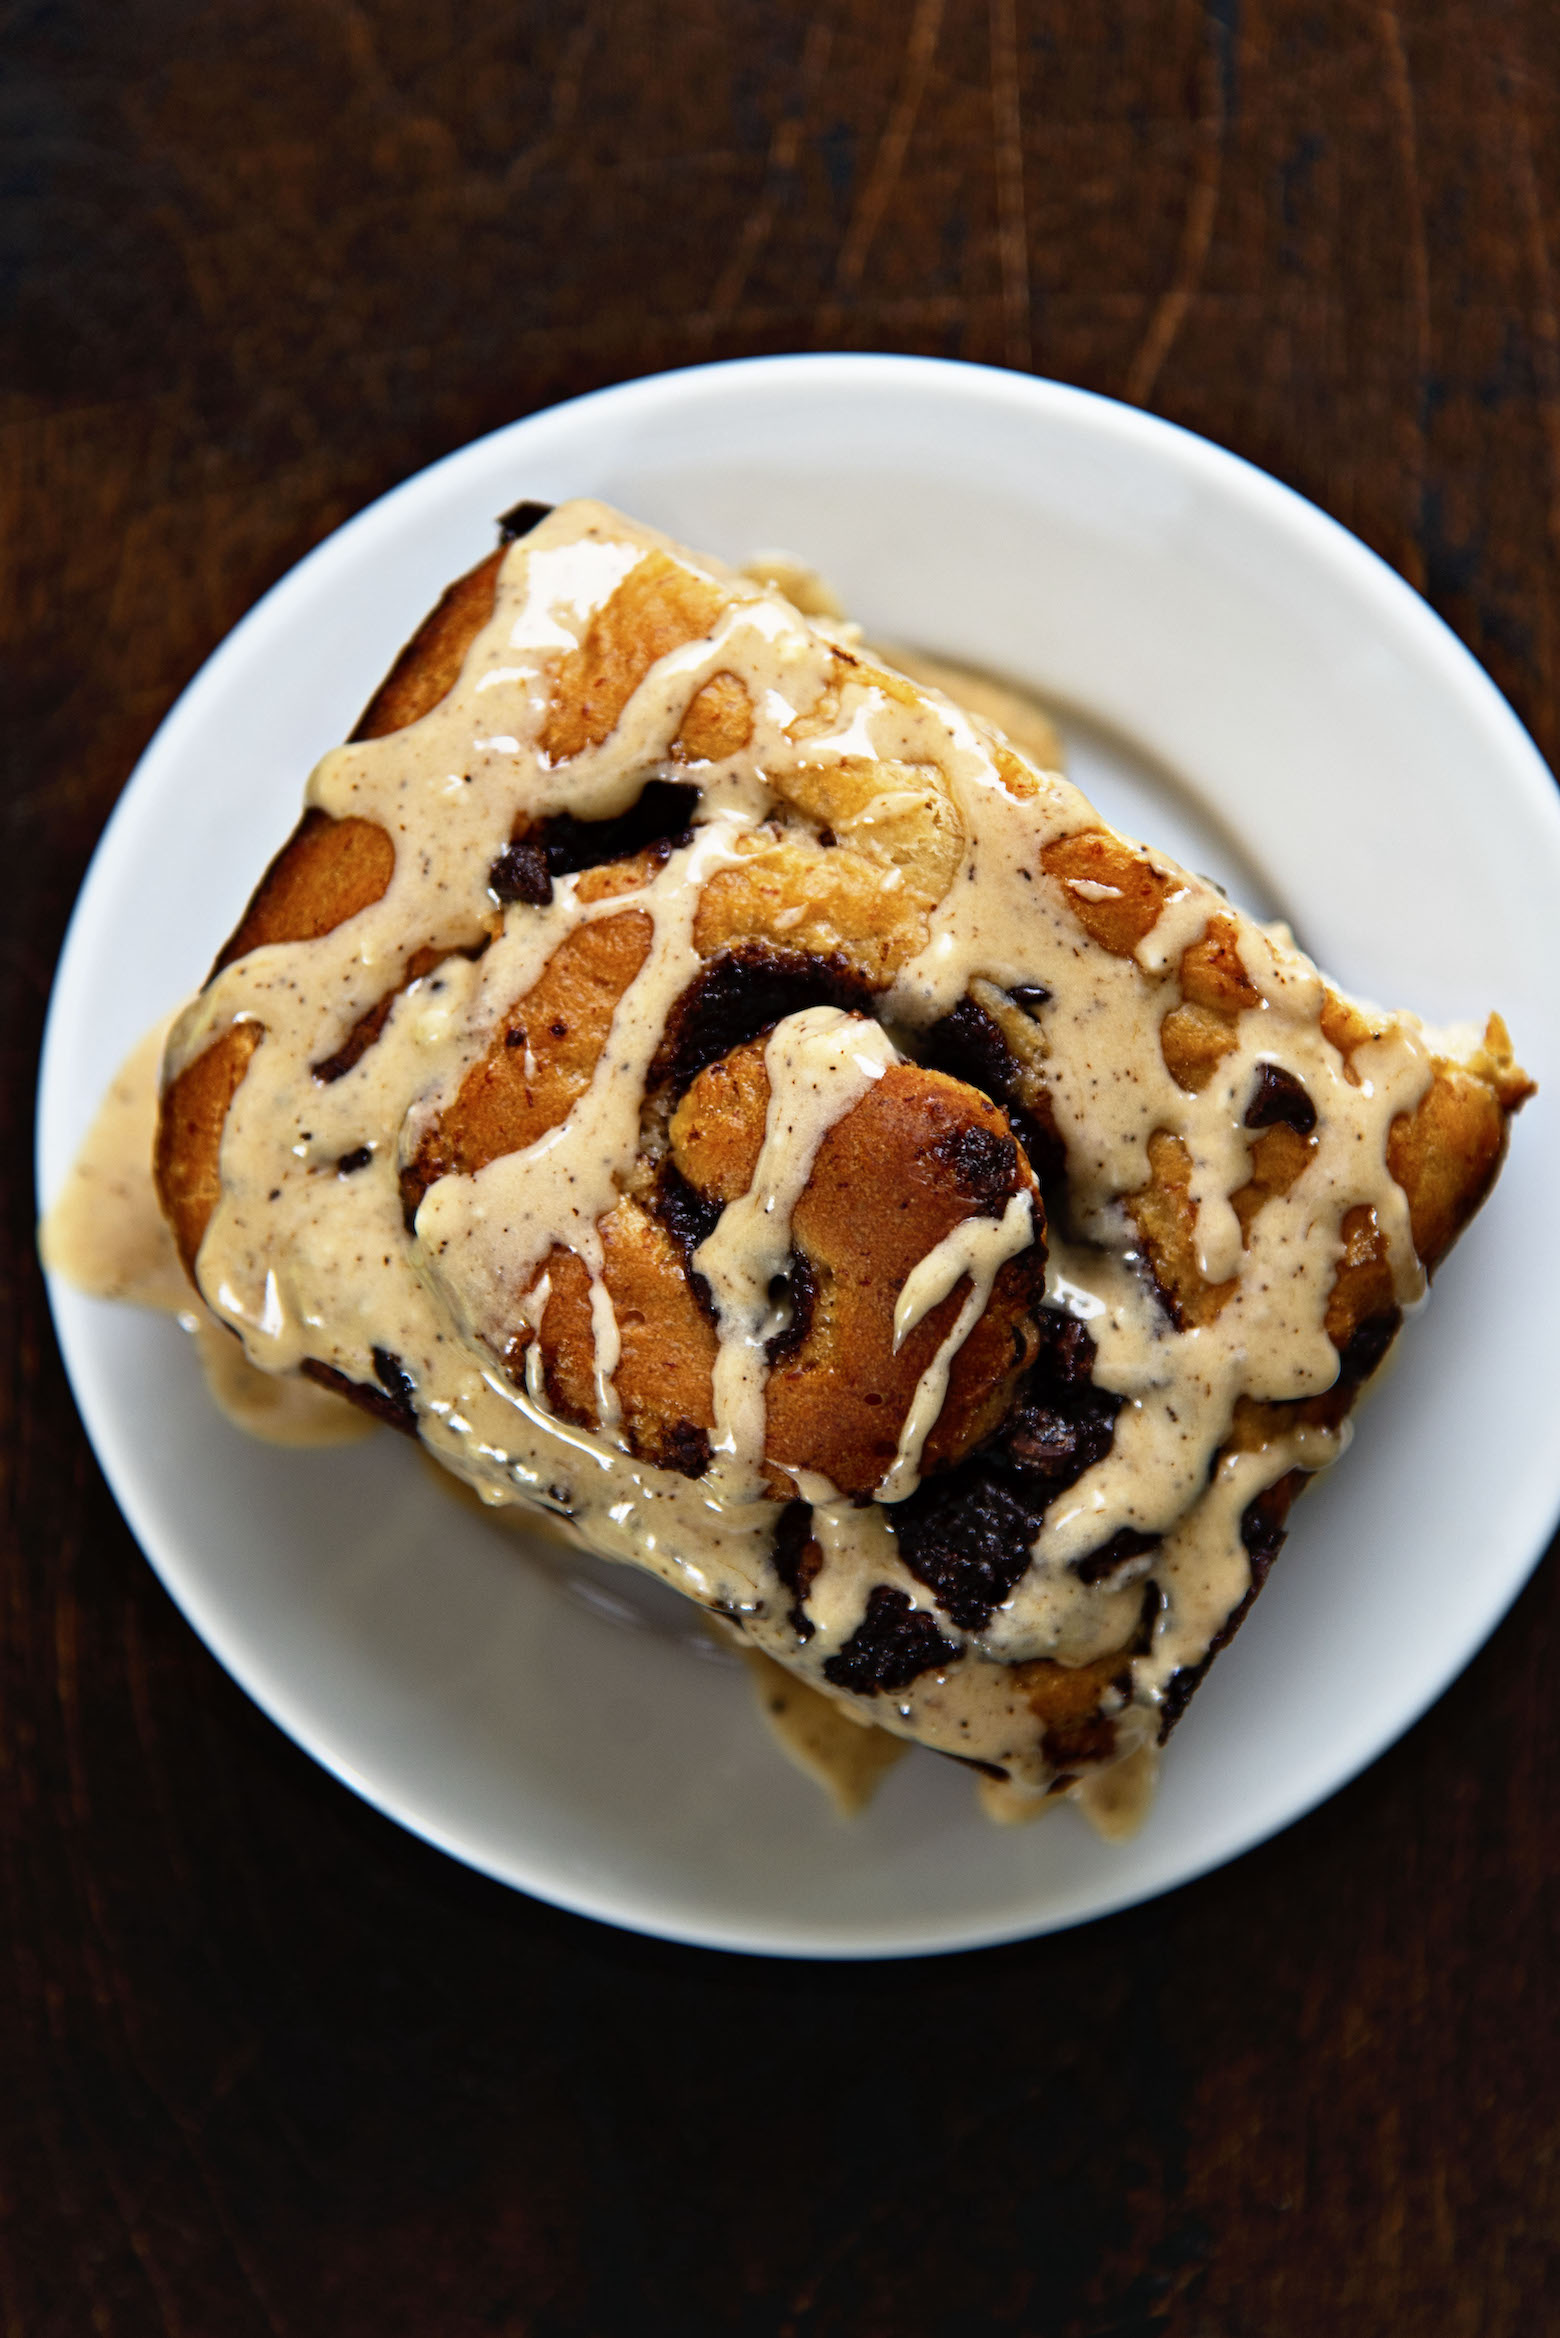 Overhead view of Banana Espresso Chocolate Sweet Rolls on a plate